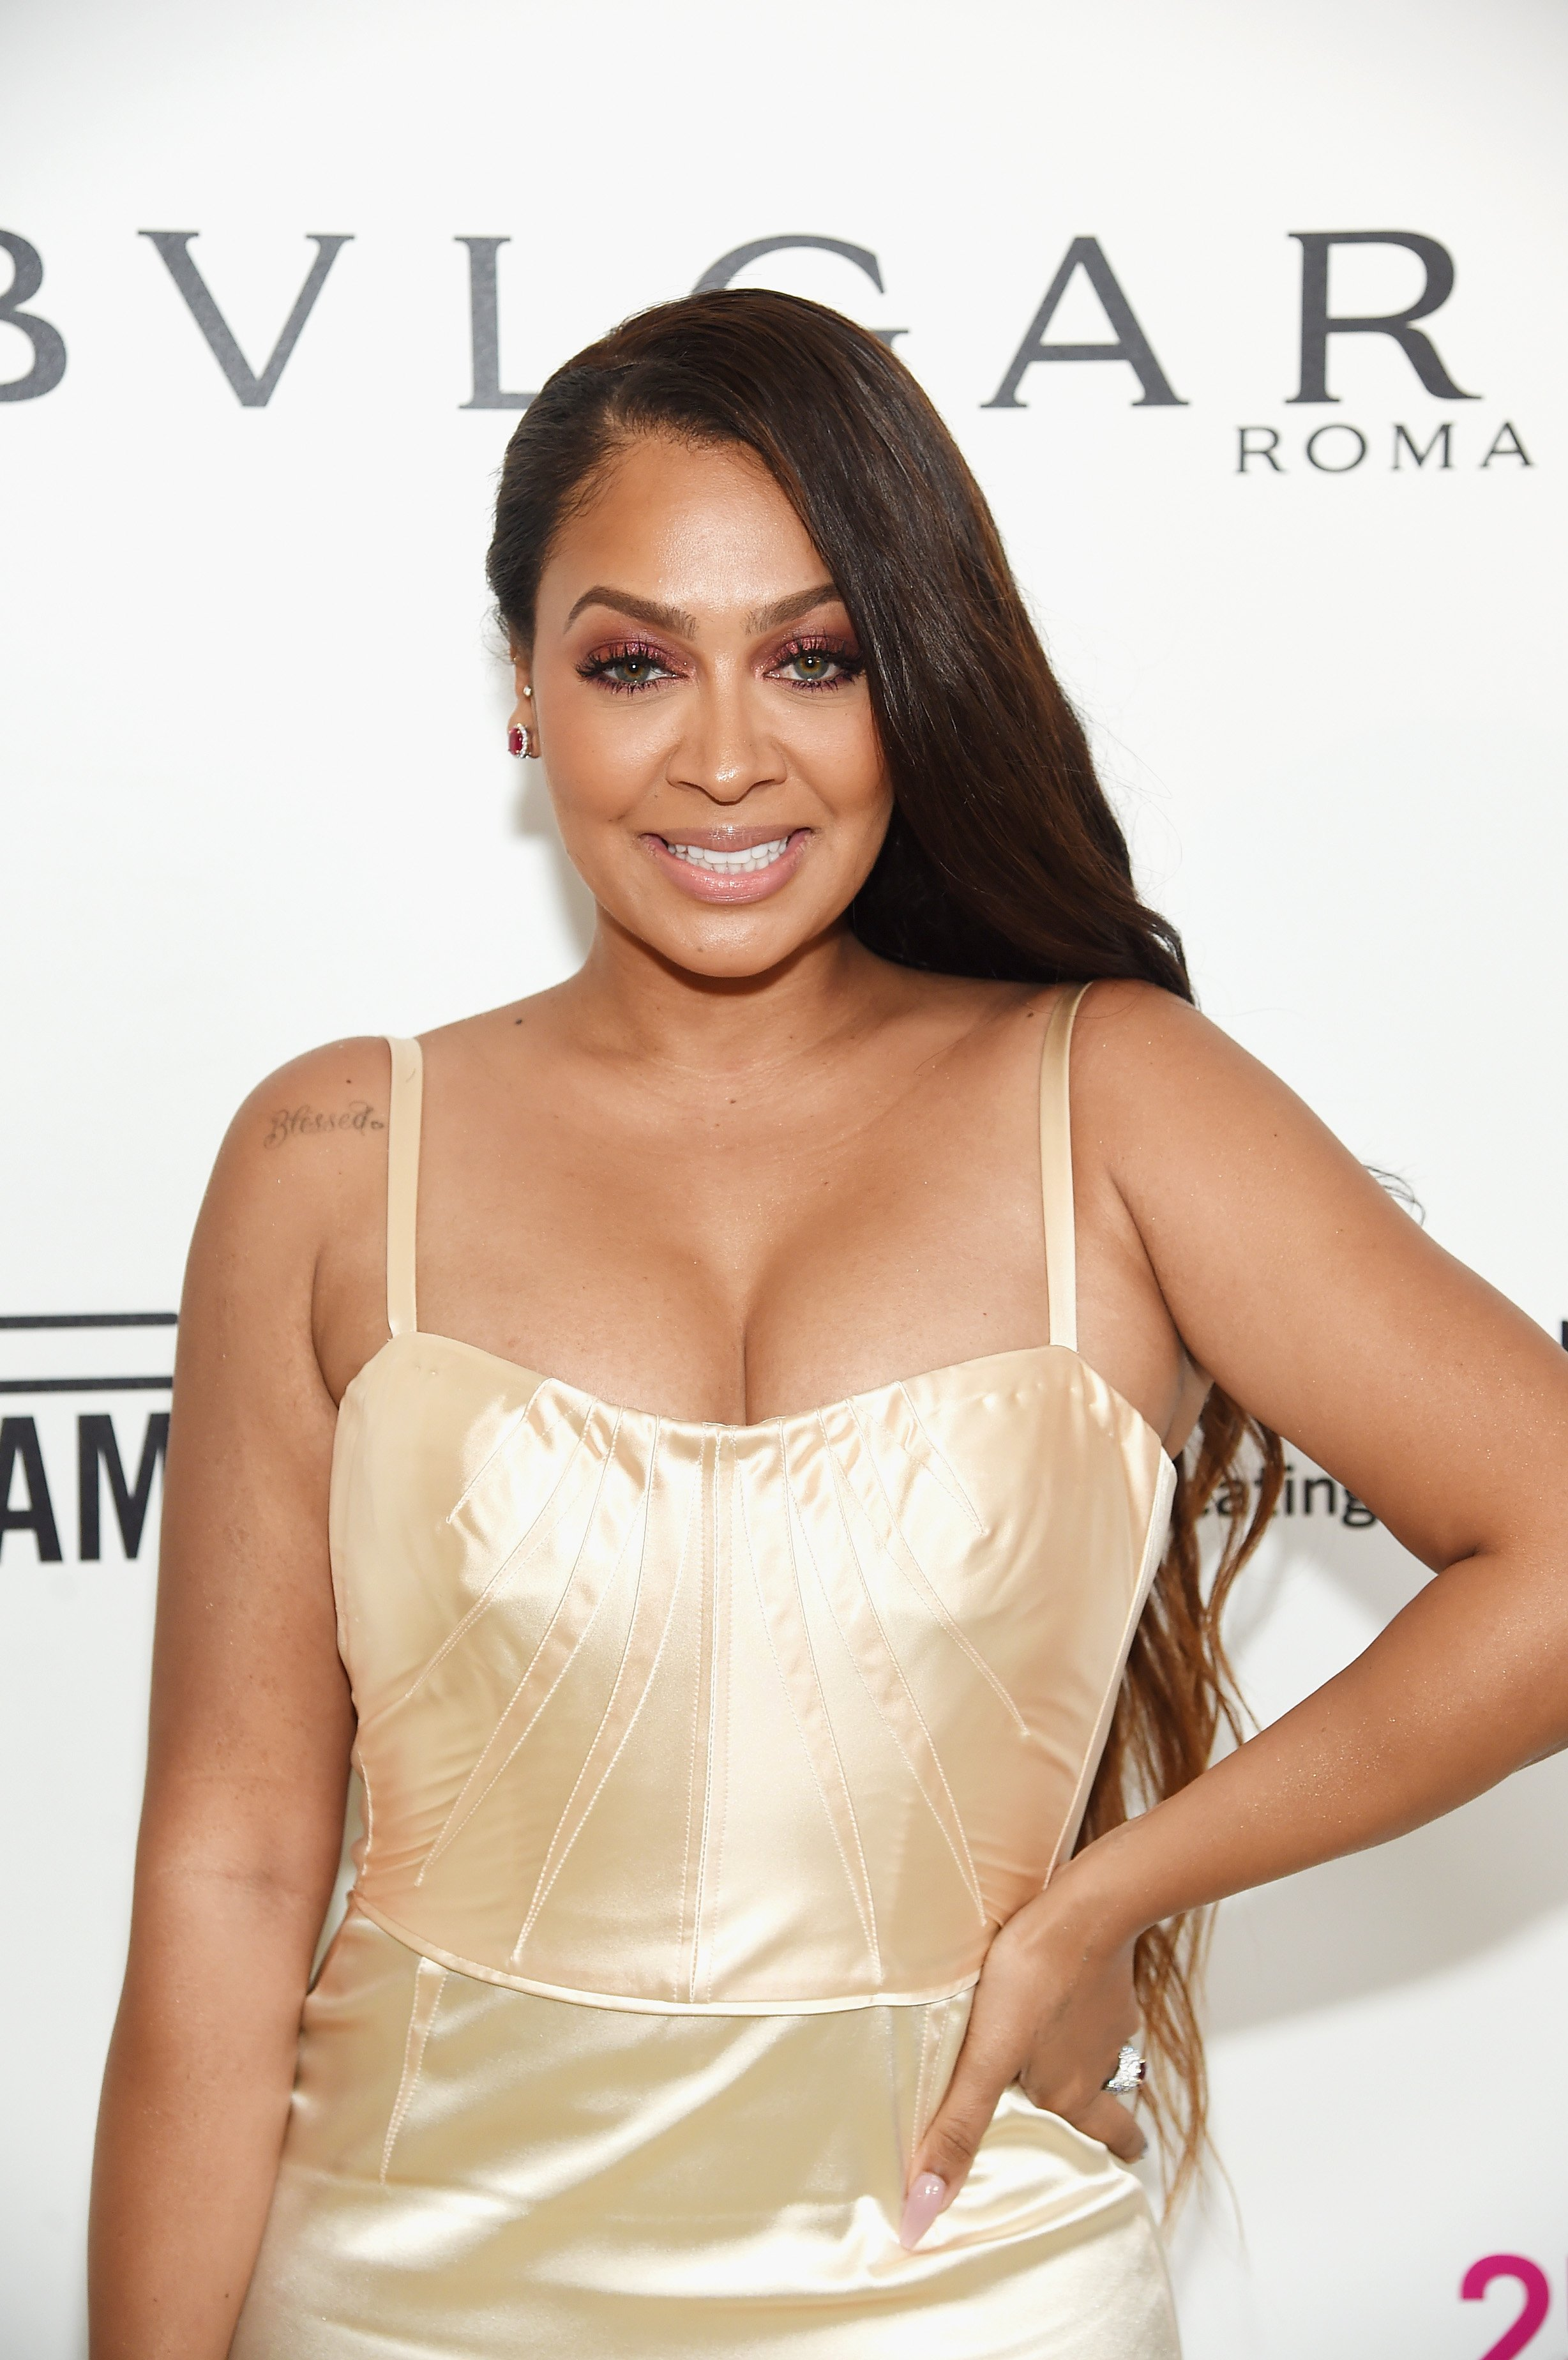 La La Anthony at the 26th annual Elton John AIDS Foundation Academy Awards Viewing Party on March 4, 2018 in West Hollywood | Photo: Getty Images